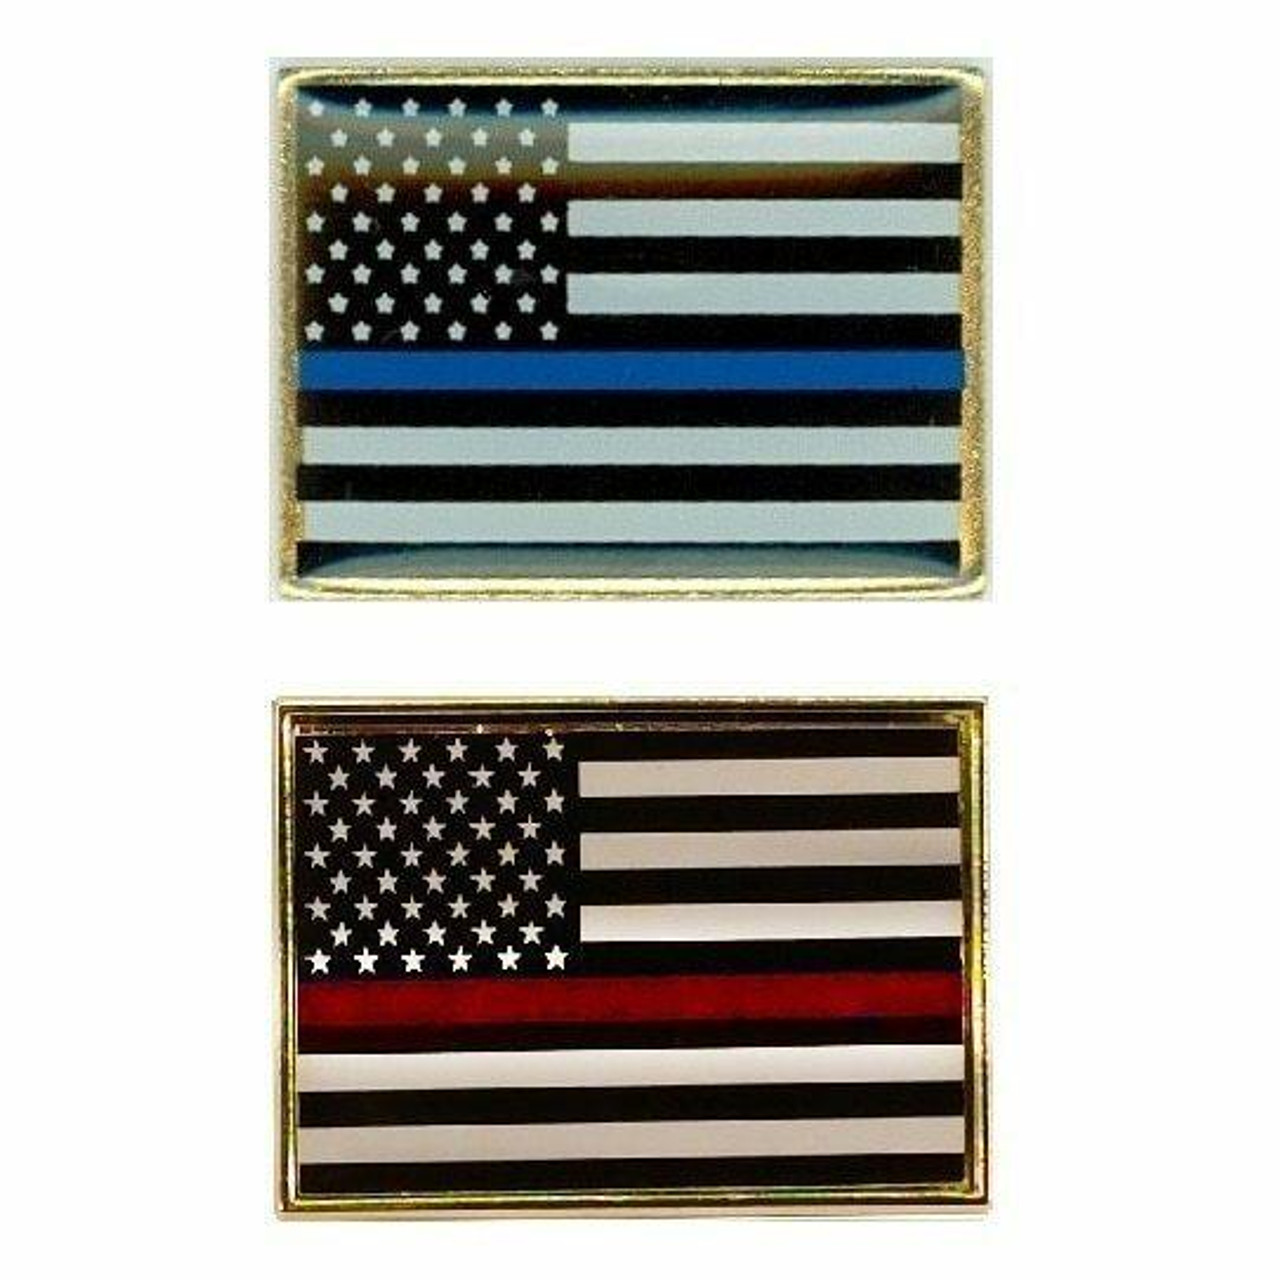 Both of our Thin Line Lapel pins are small American flags with black features instead of blue and red. The center stripe is either red for firefighters or blue for police. Each has a gold-colored border.